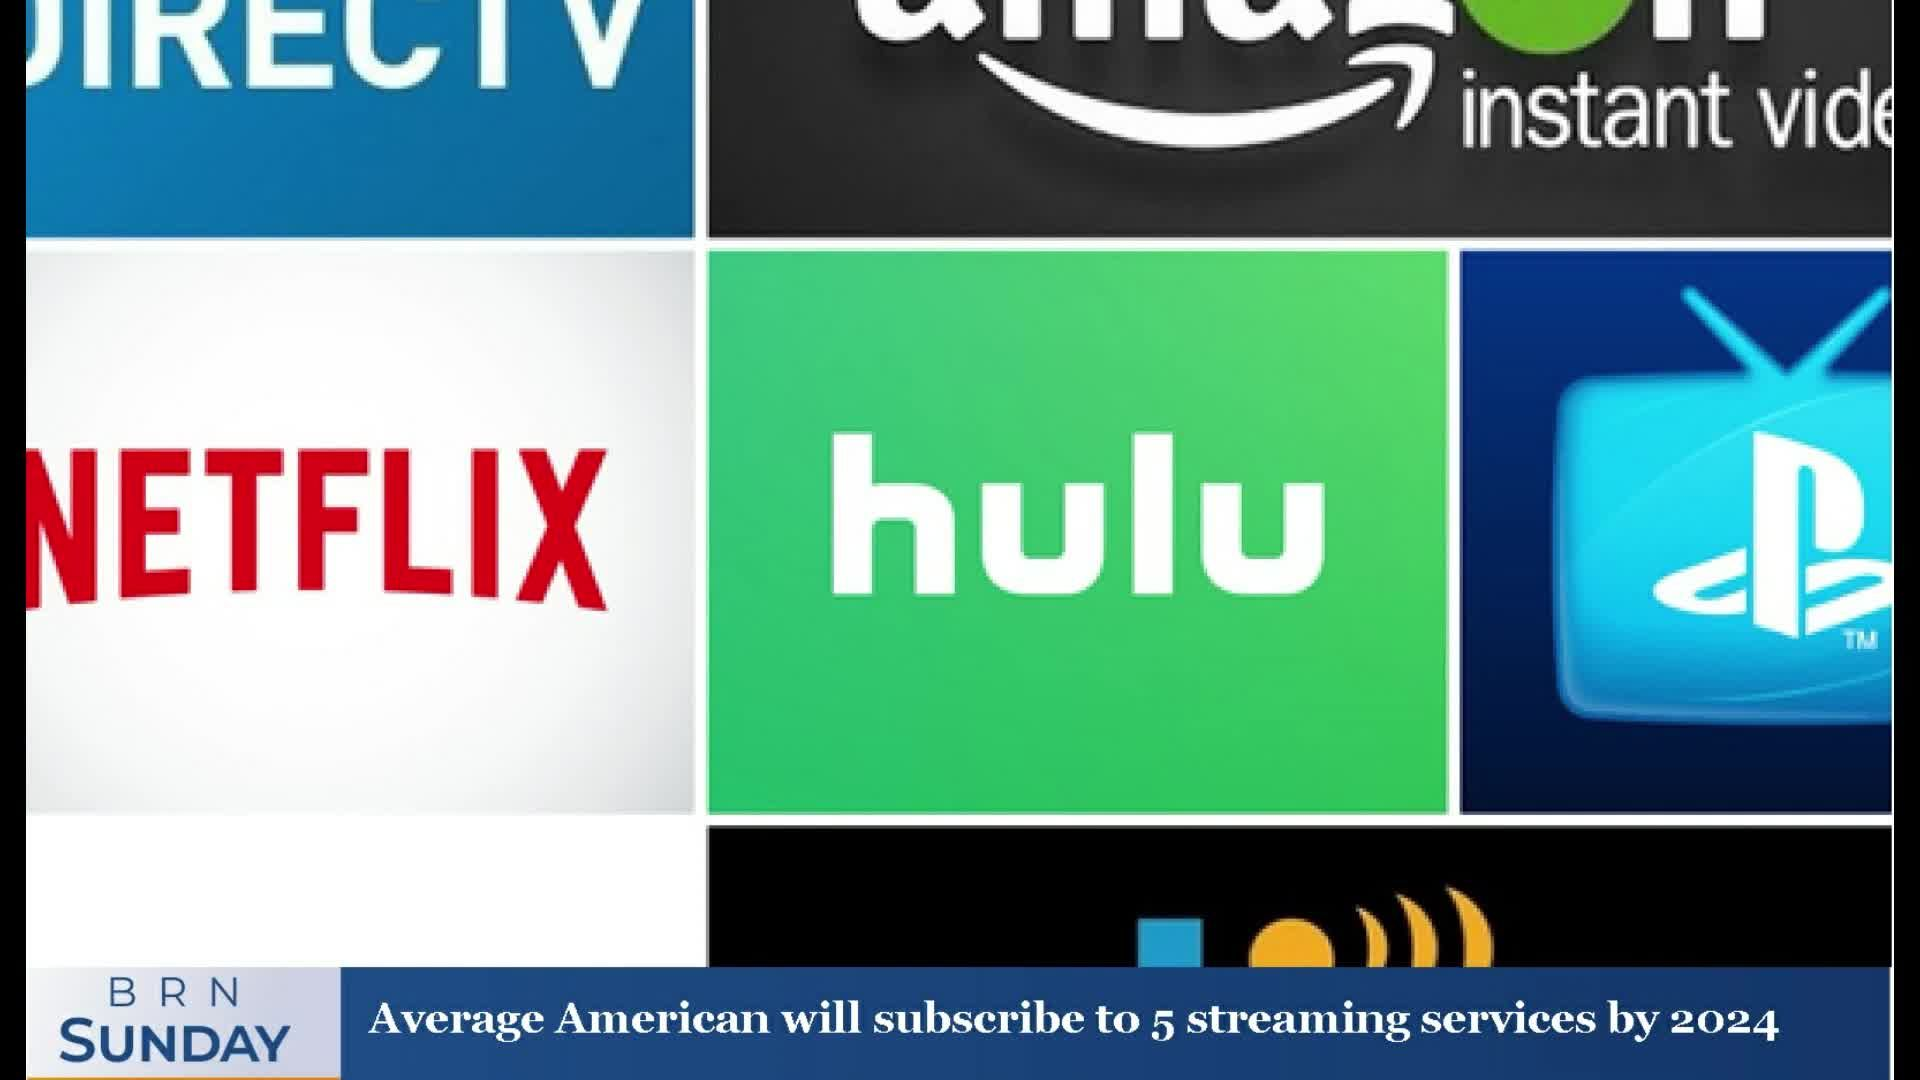 BRN Sunday   Average American will subscribe to 5 streaming services by 2024